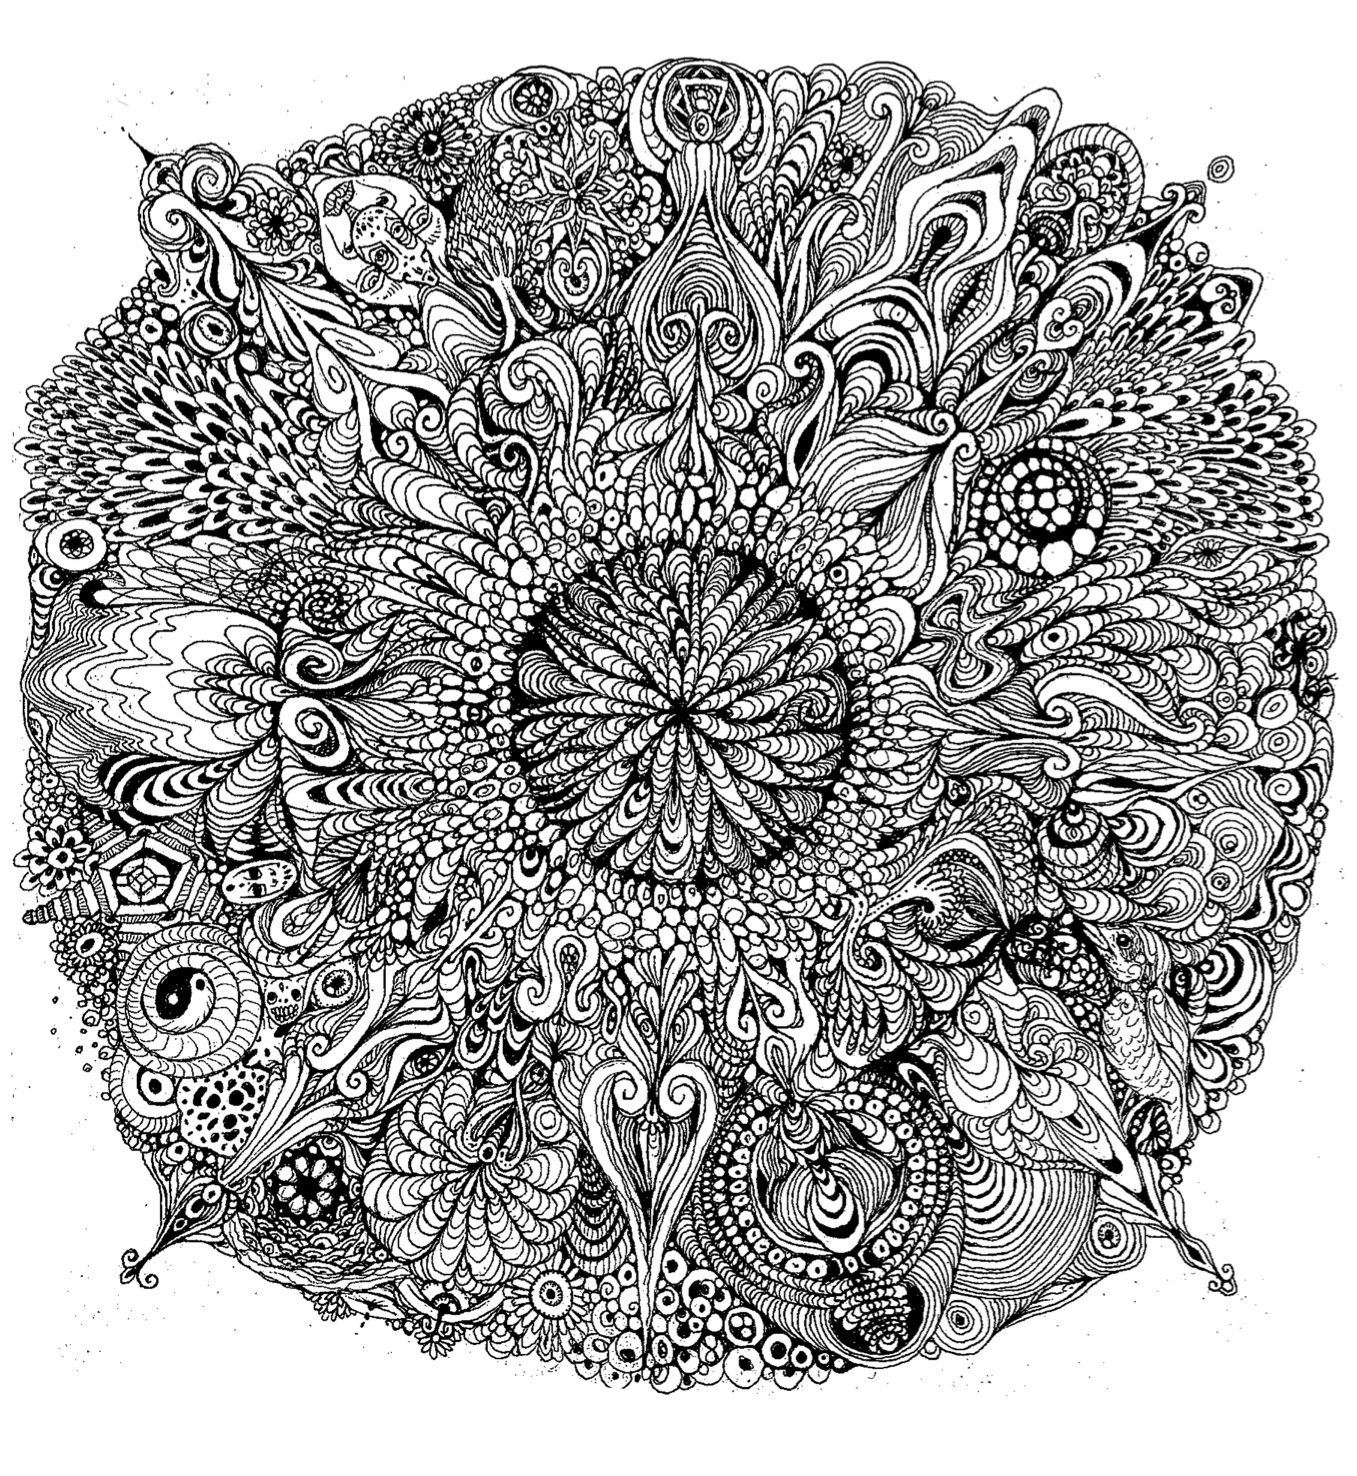 Detailed mandala coloring pages - Coloring Pages Coloring Pages Mandalas To Color Free Printables Celtic Heart Mandala Coloring Pages Mandala Printable Coloring Pages Mandala Printable